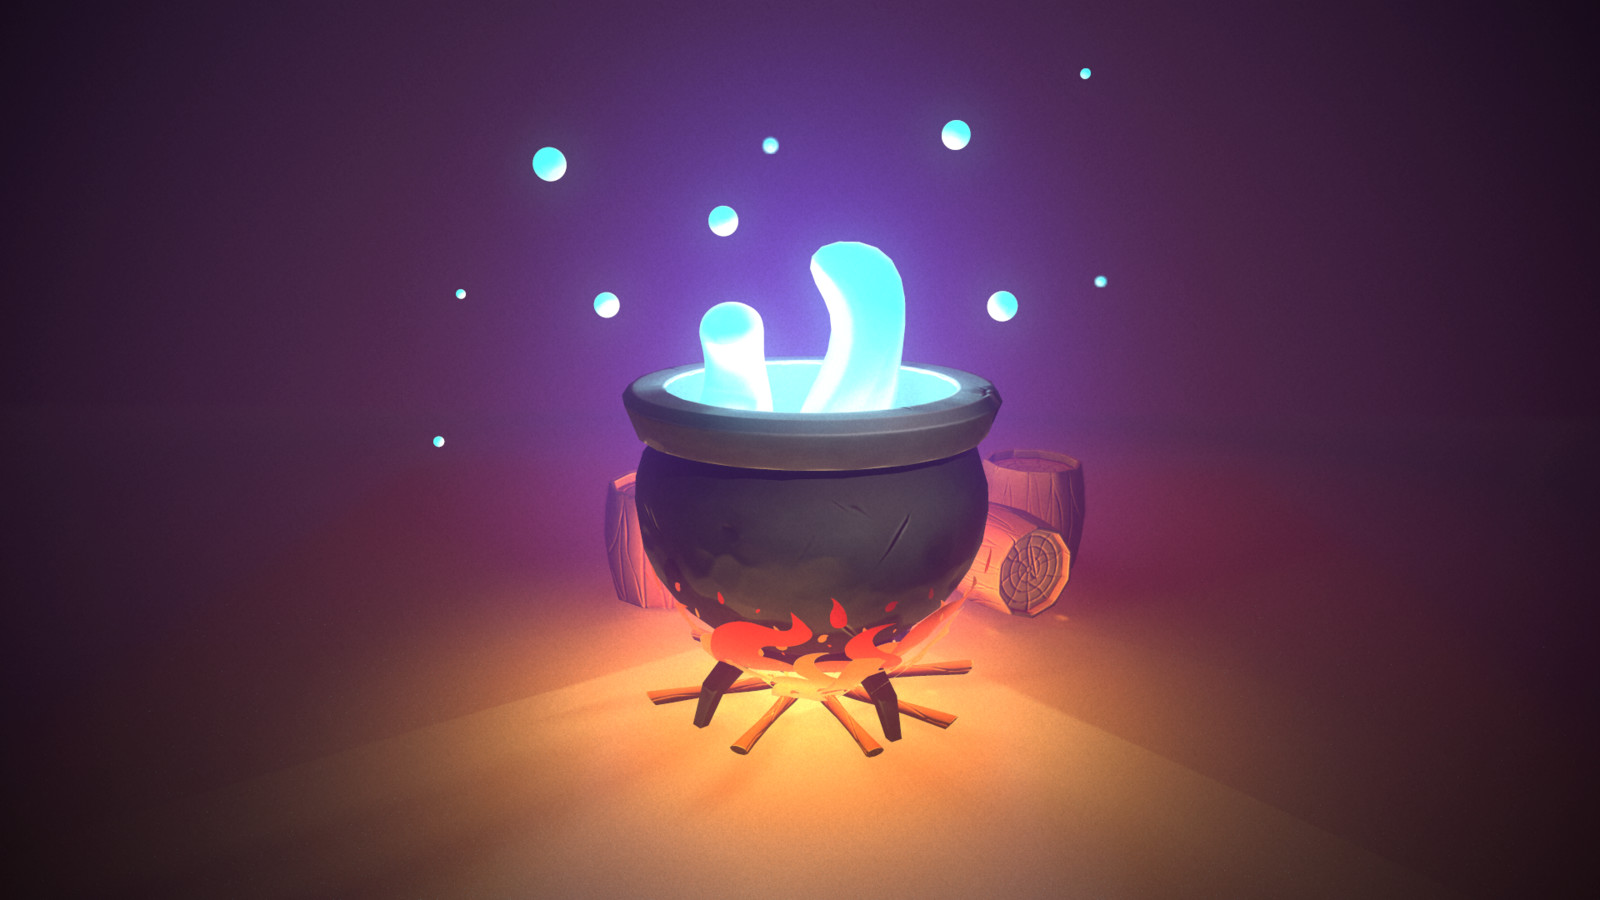 Magic Cauldron